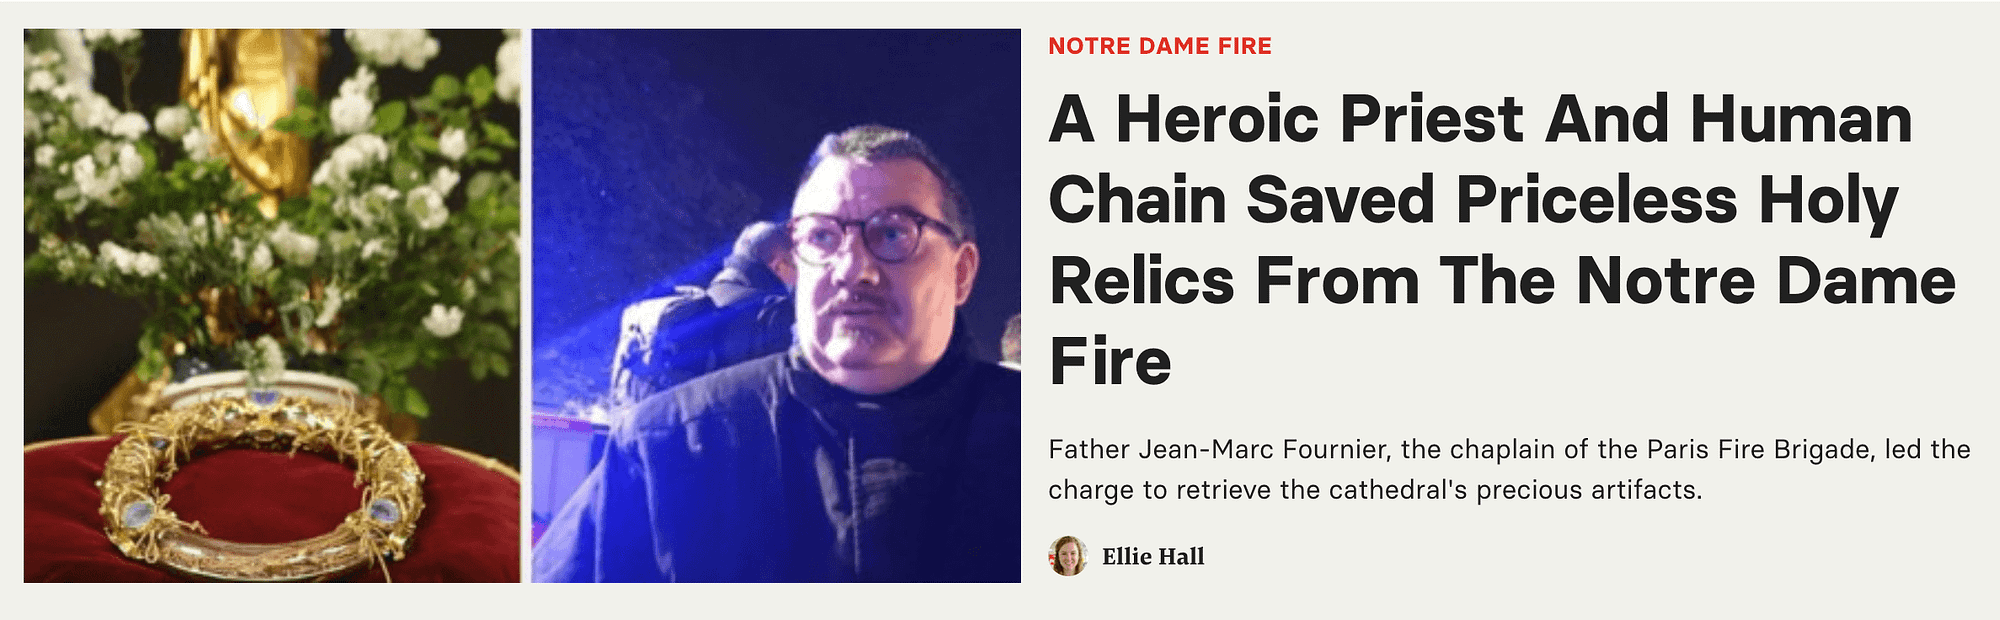 A headline about a priest who rescued relics from the Notre Dame Fire with help from a human chain.